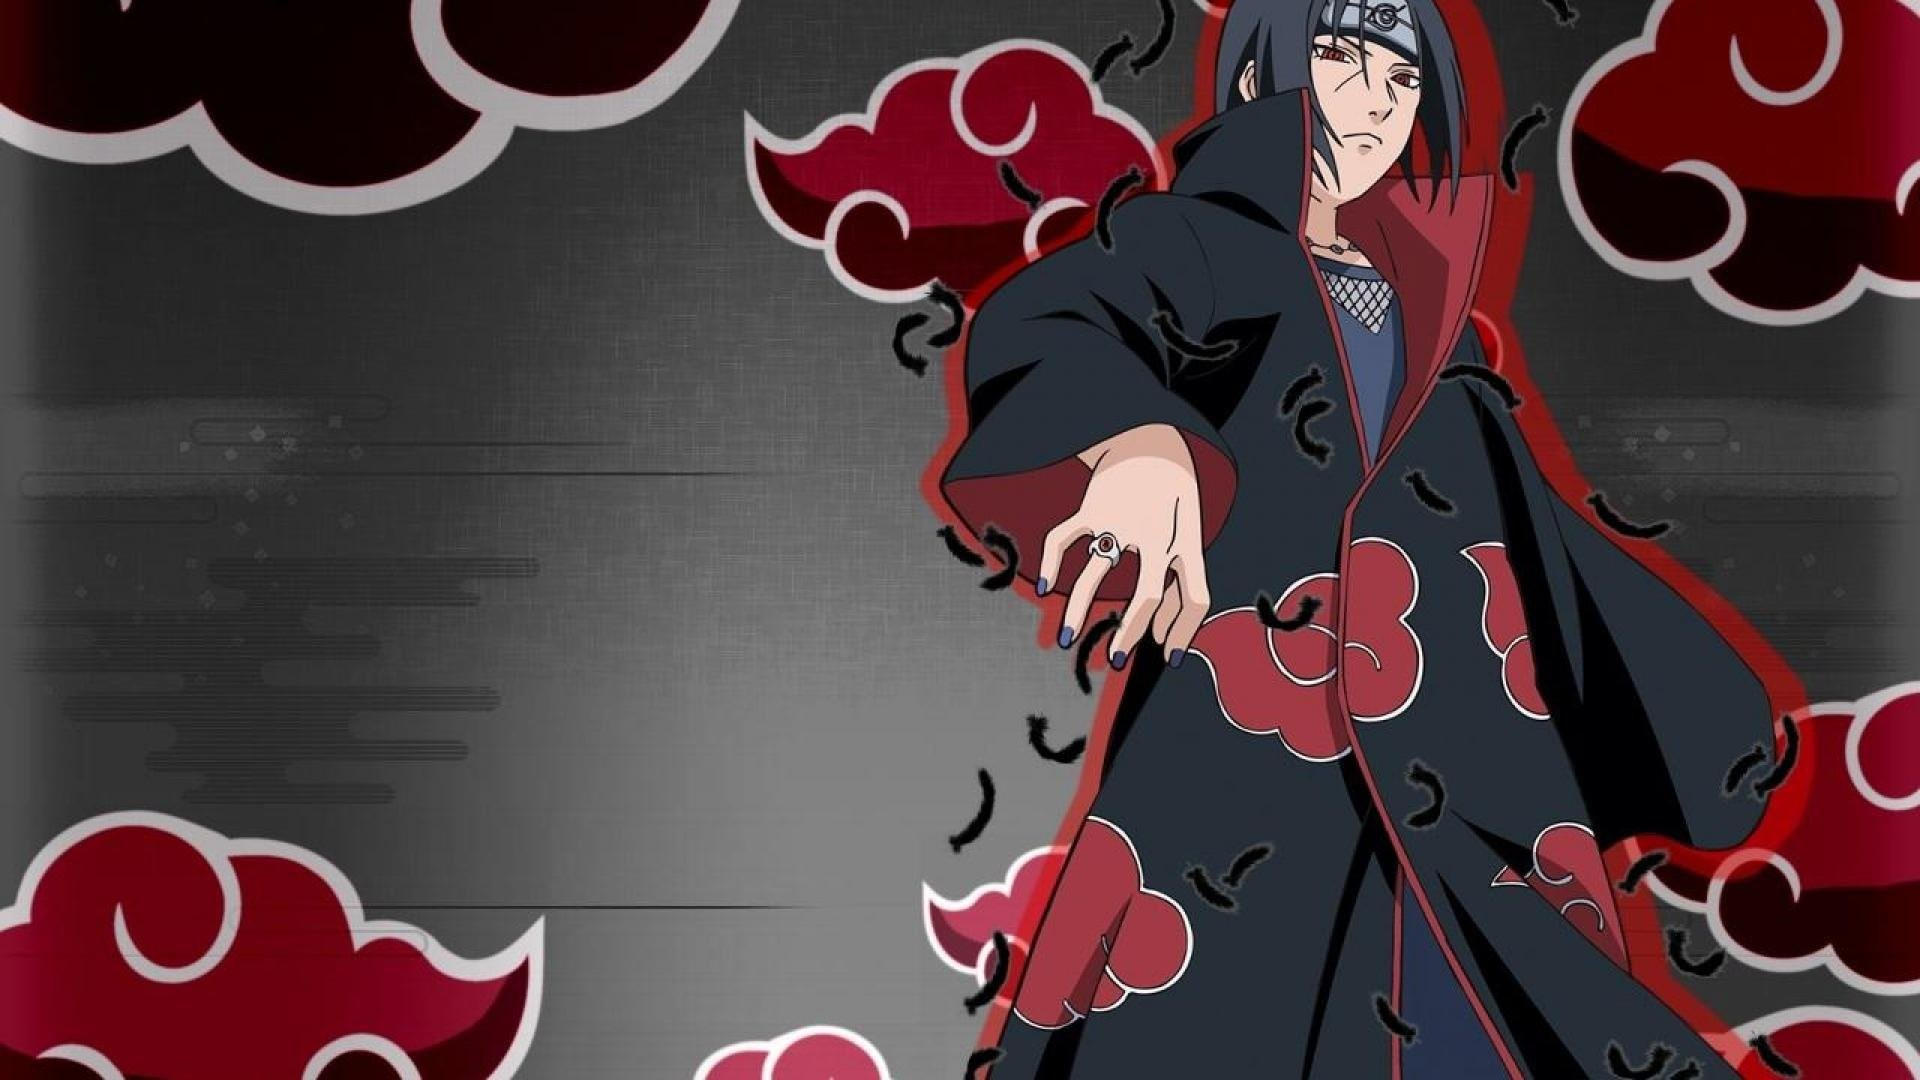 Shisui Uchiha Wallpapers 77 Images